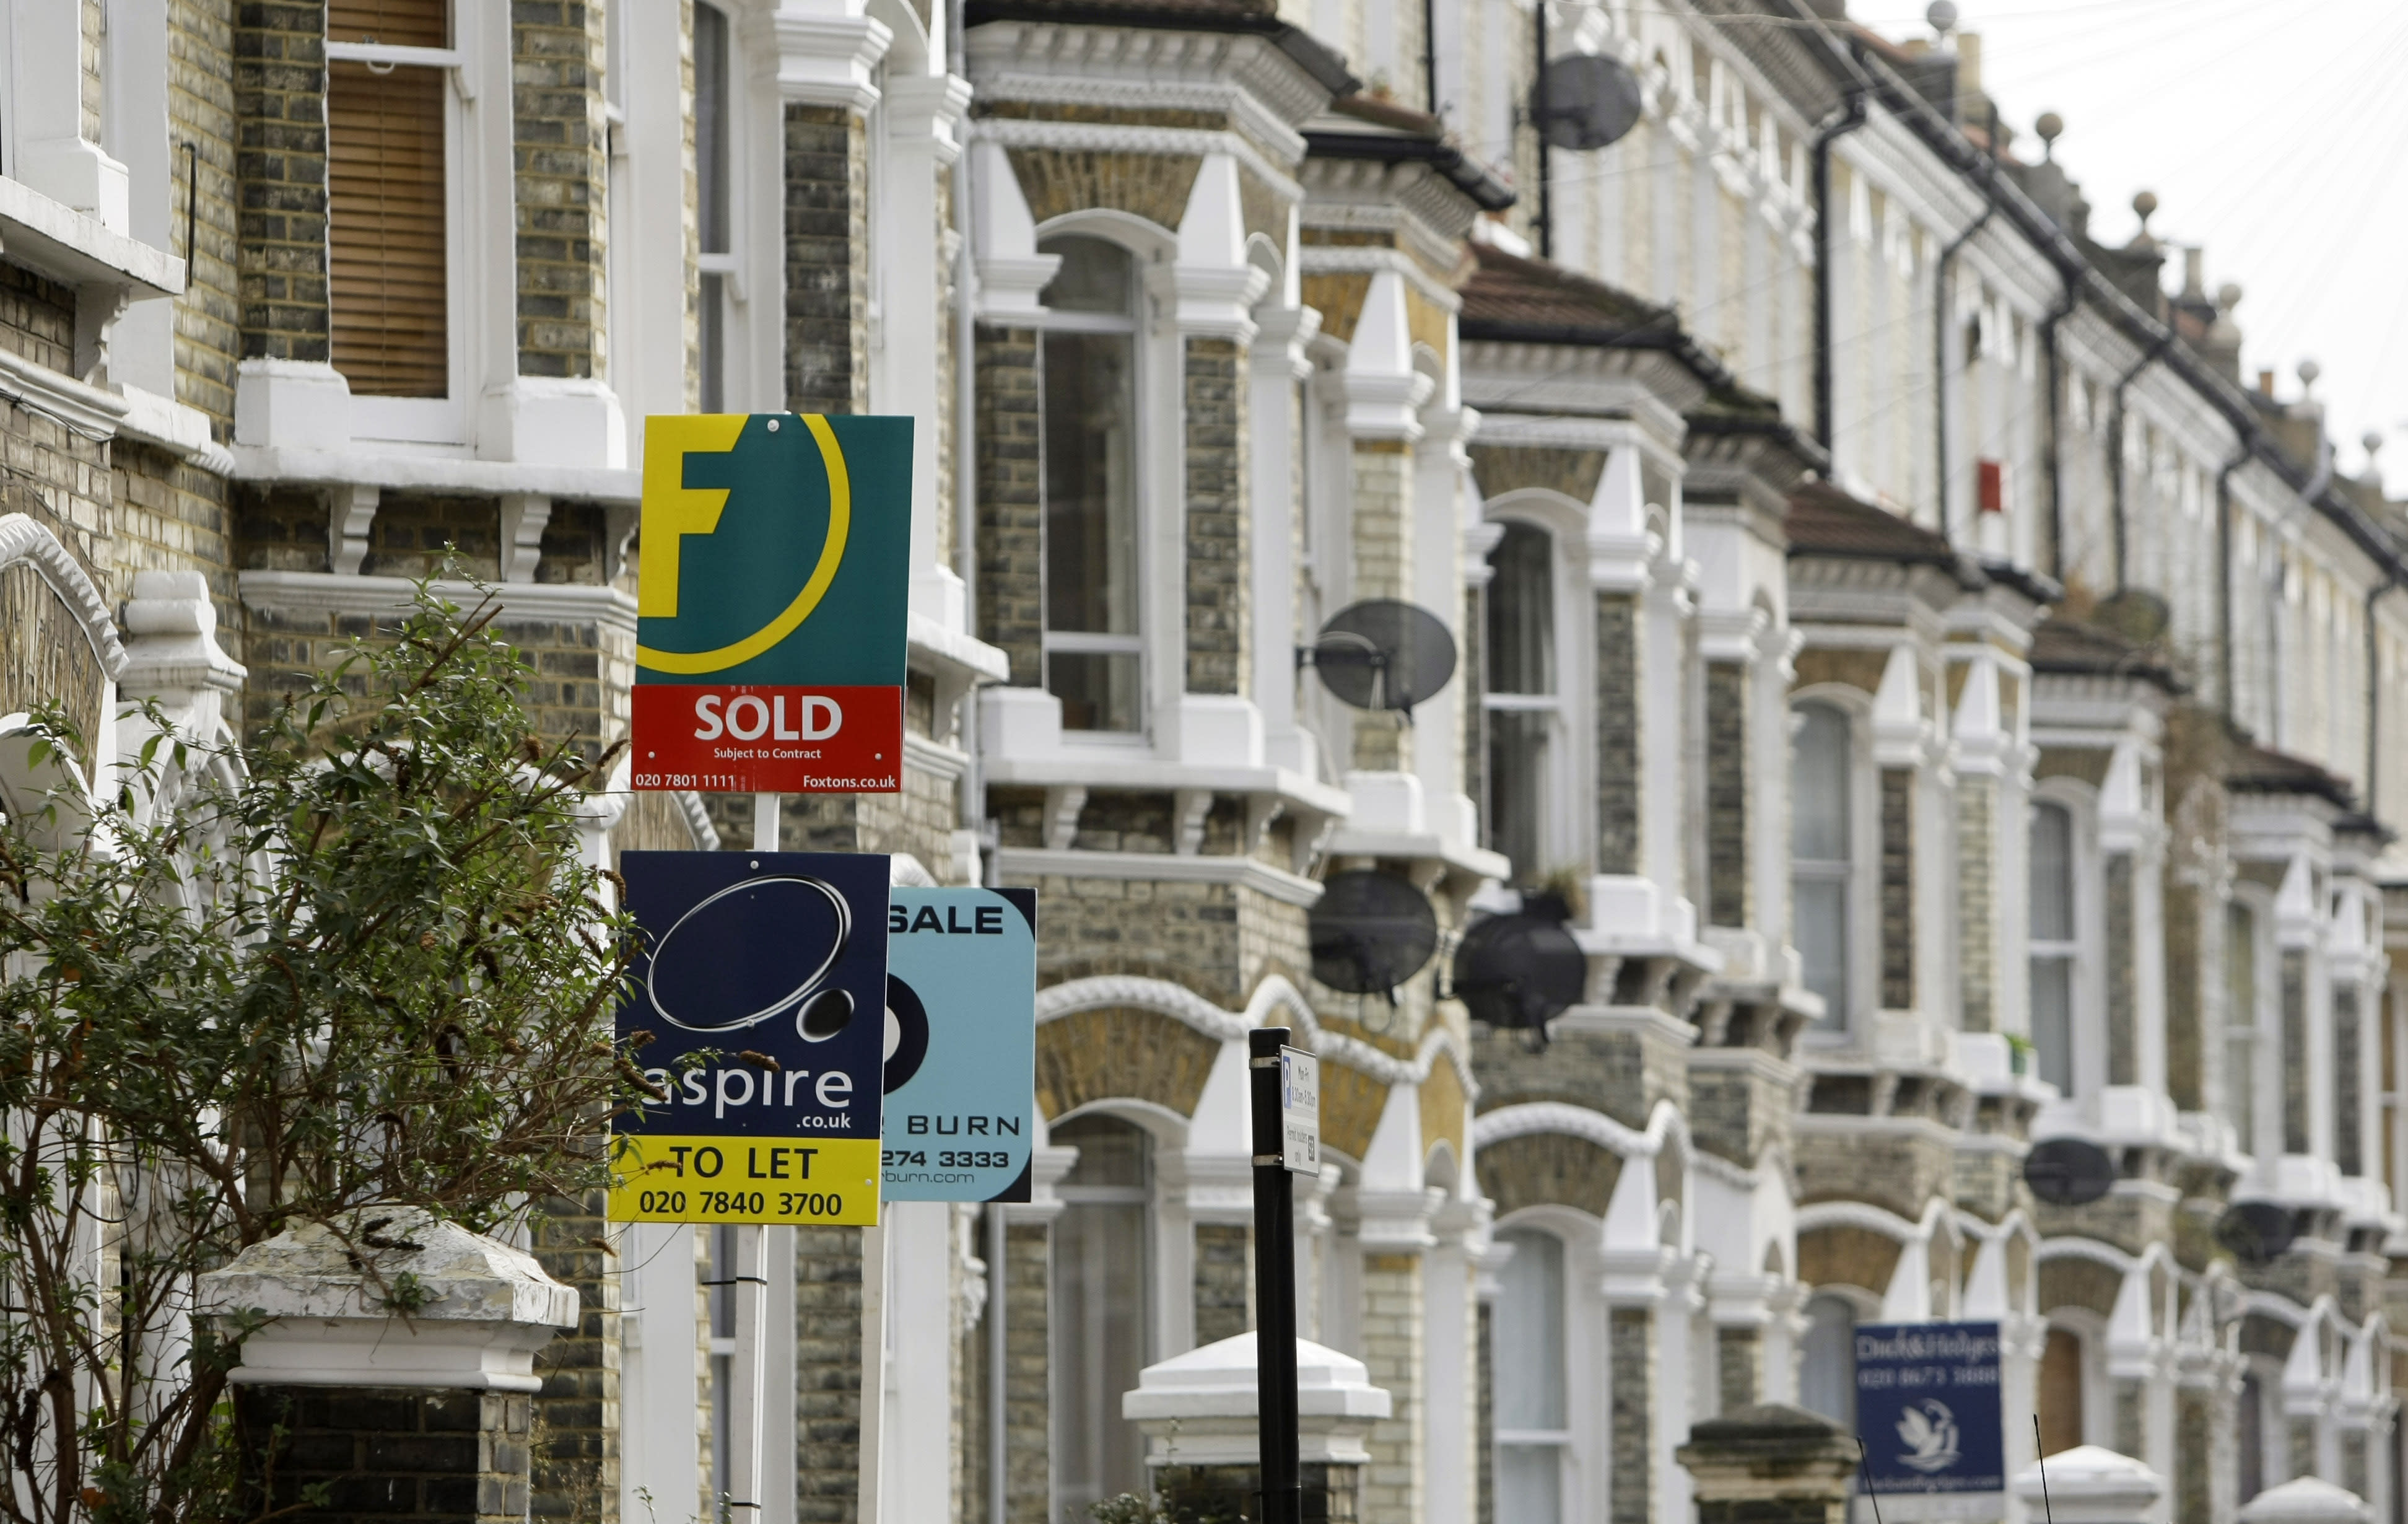 London property market suffers worst year in a decade as prices crash